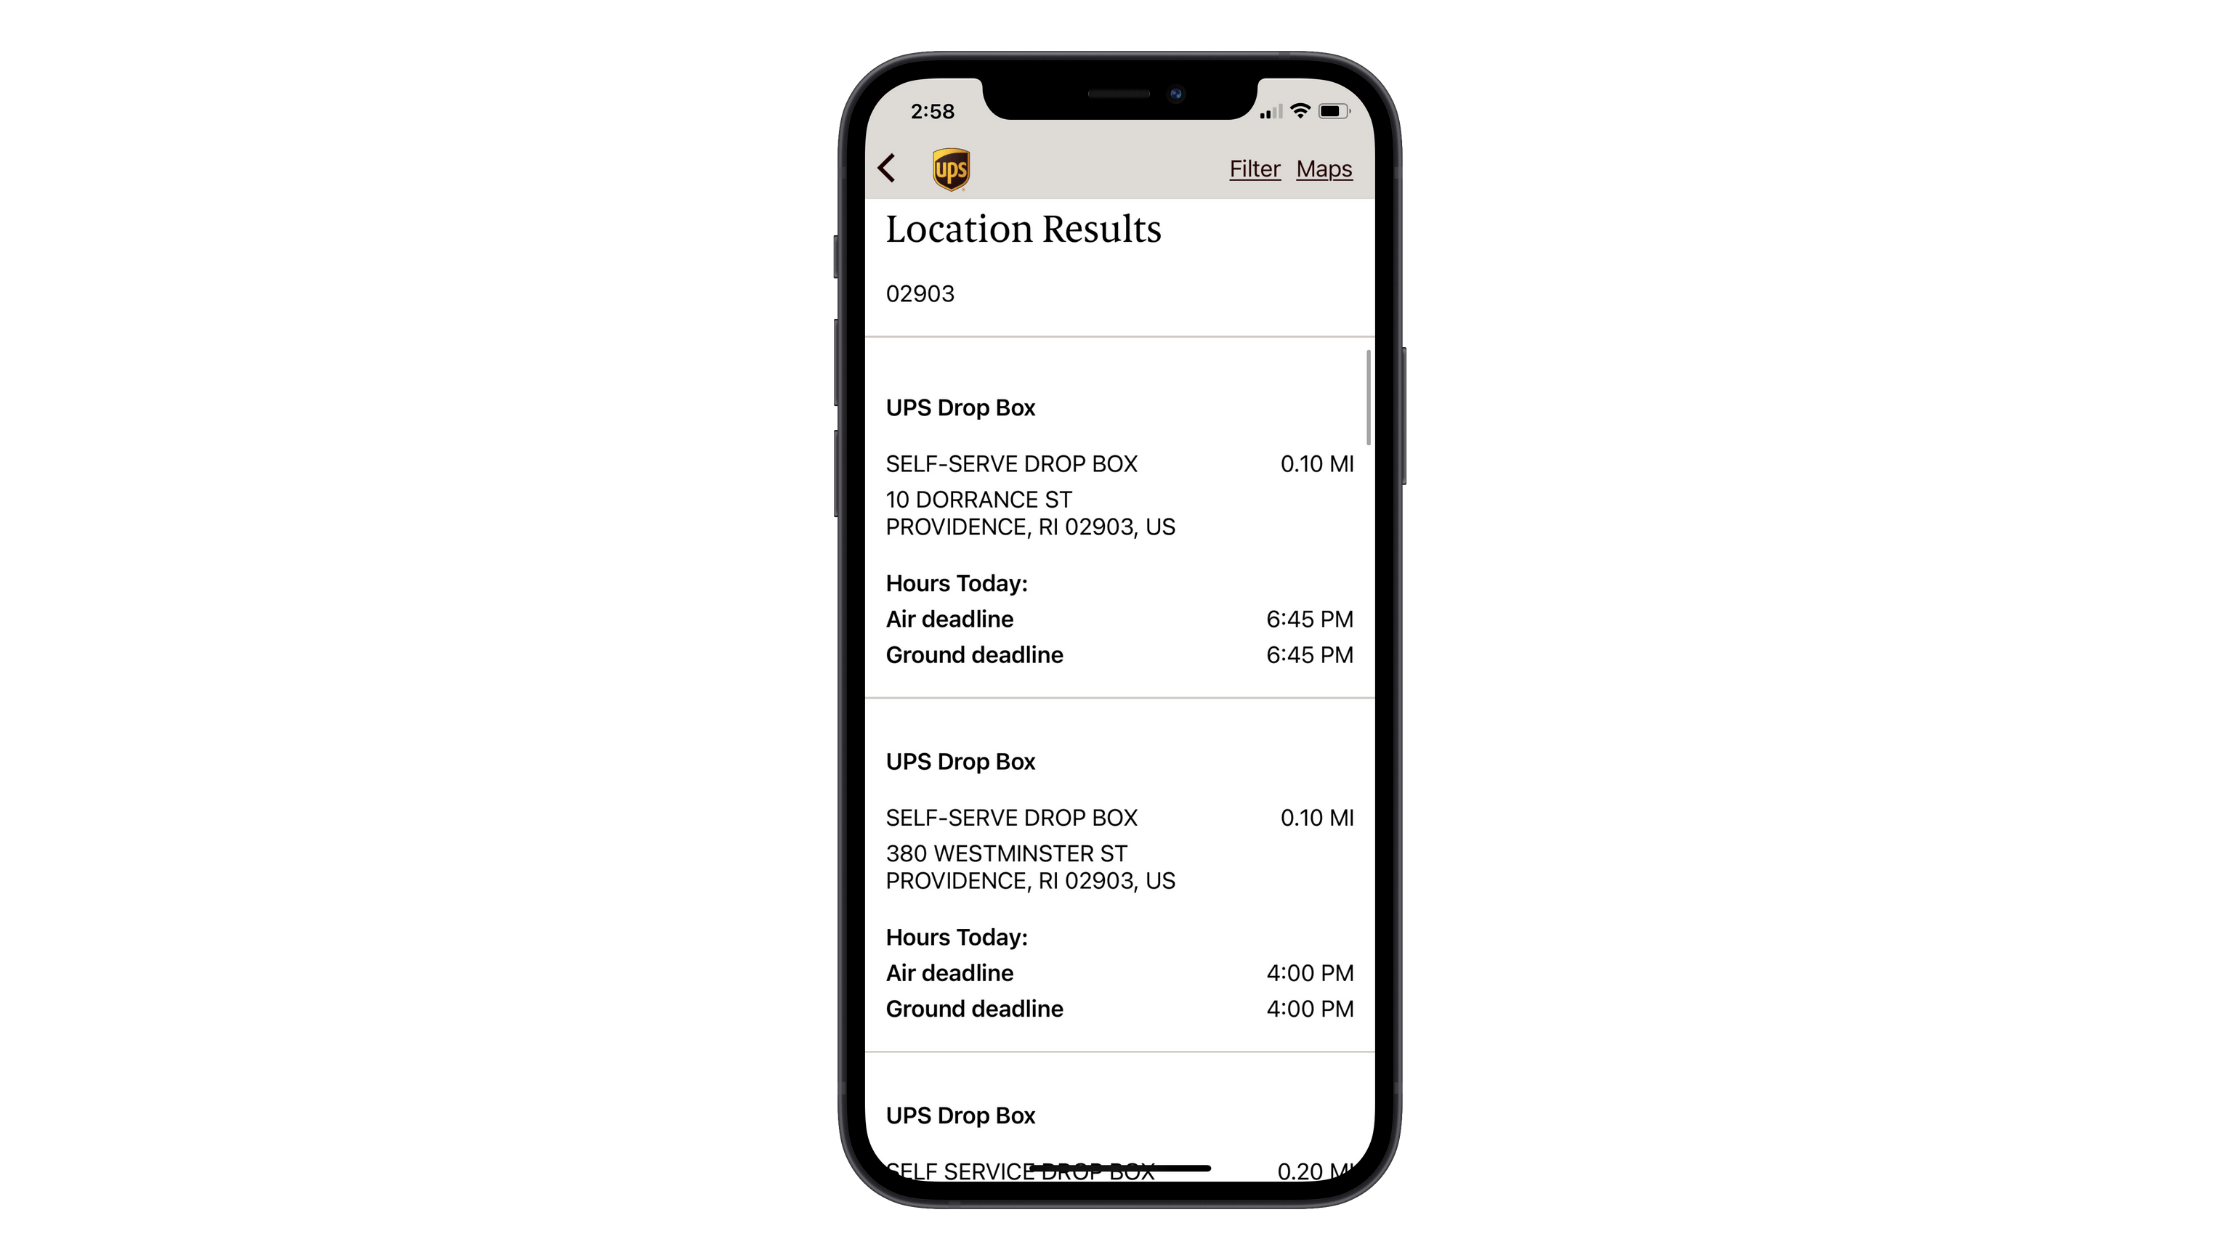 A search for UPS locations near zip code 02903 in the mobile app yields results for UPS drop box locations on 10 Dorrance St and 380 Westminster St in Providence, RI.